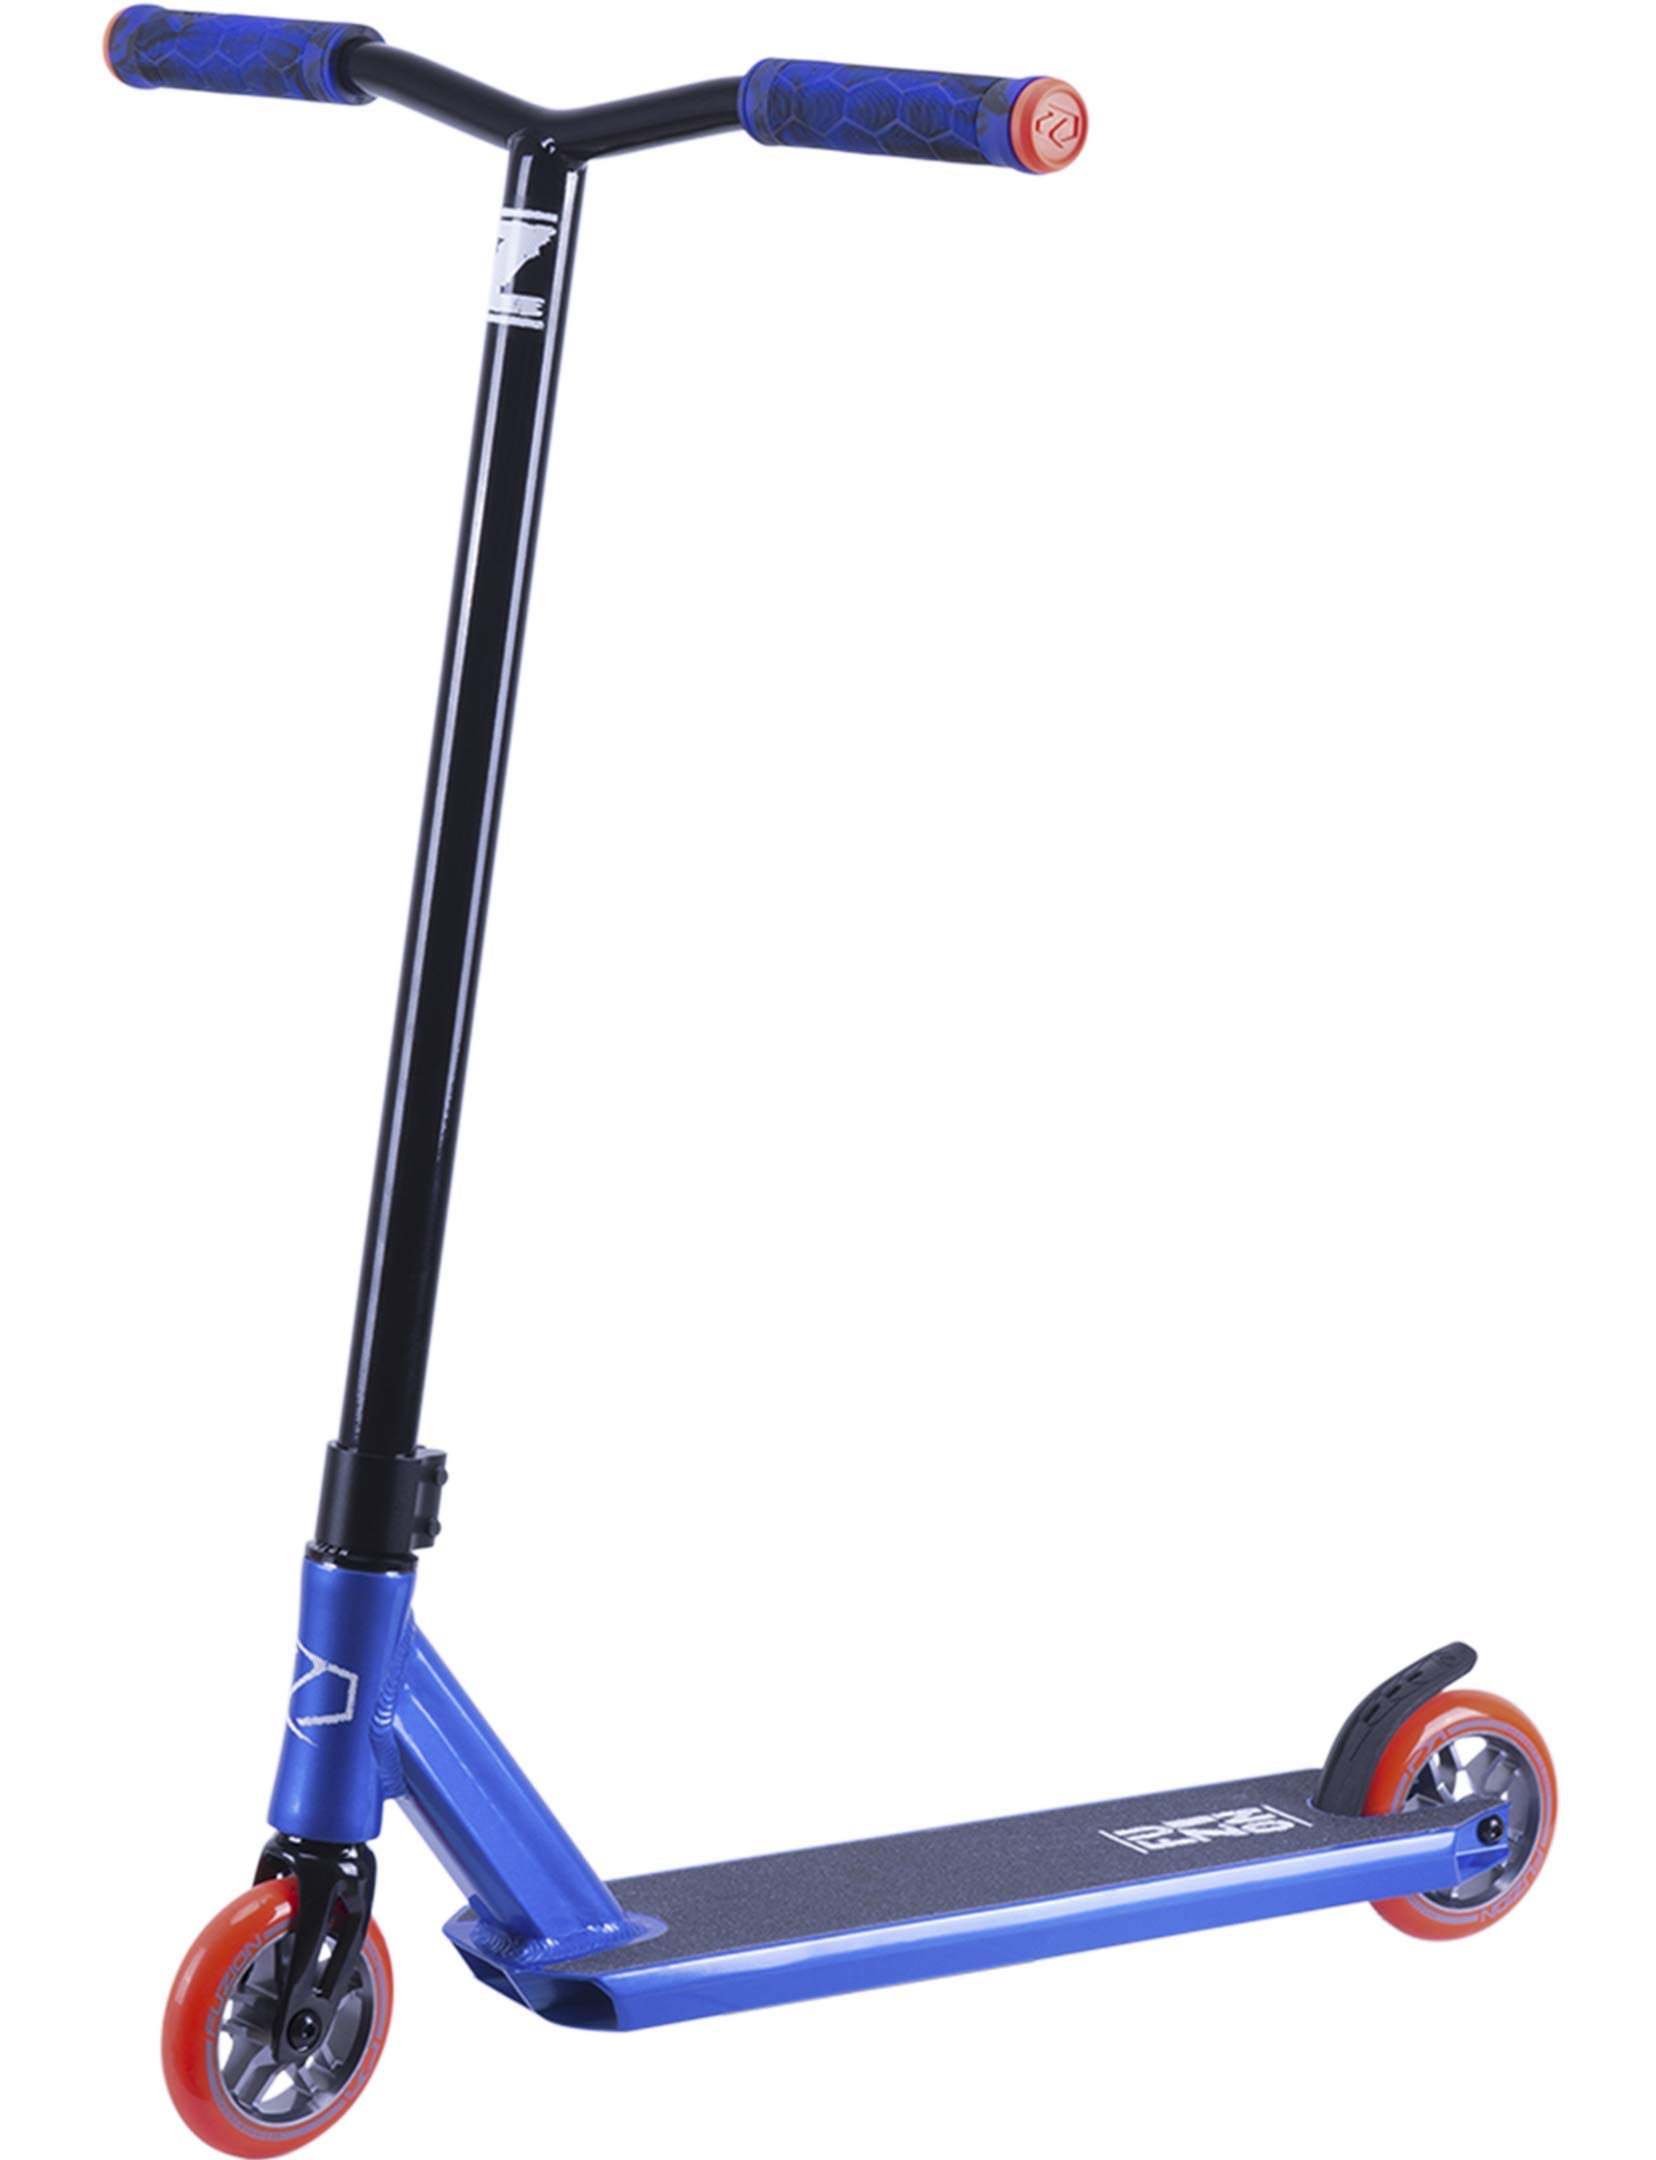 Fuzion Z250 Pro Scooters - Trick Scooter - Intermediate and Beginner Stunt Scooters for Kids 8 Years and Up, Teens and Adults – Durable Freestyle Kick Scooter for Boys and Girls (2019 Racing Blue)